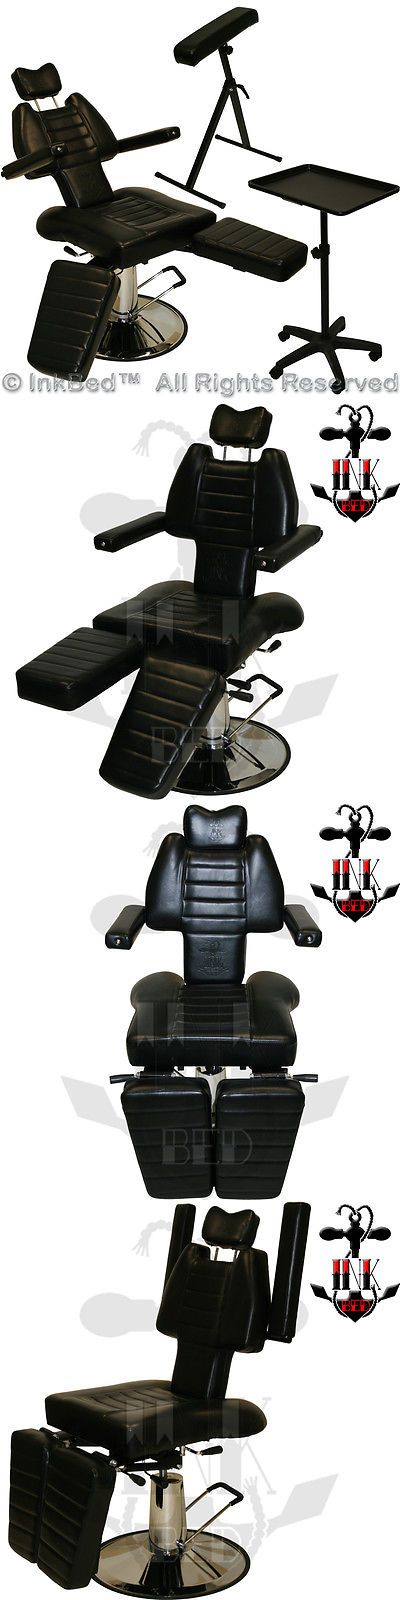 Tattoo Supplies: Inkchair New Sturdy Reclining Hydraulic Client Chair Tray Tattoo Arm Rest Studio -> BUY IT NOW ONLY: $415.88 on eBay!